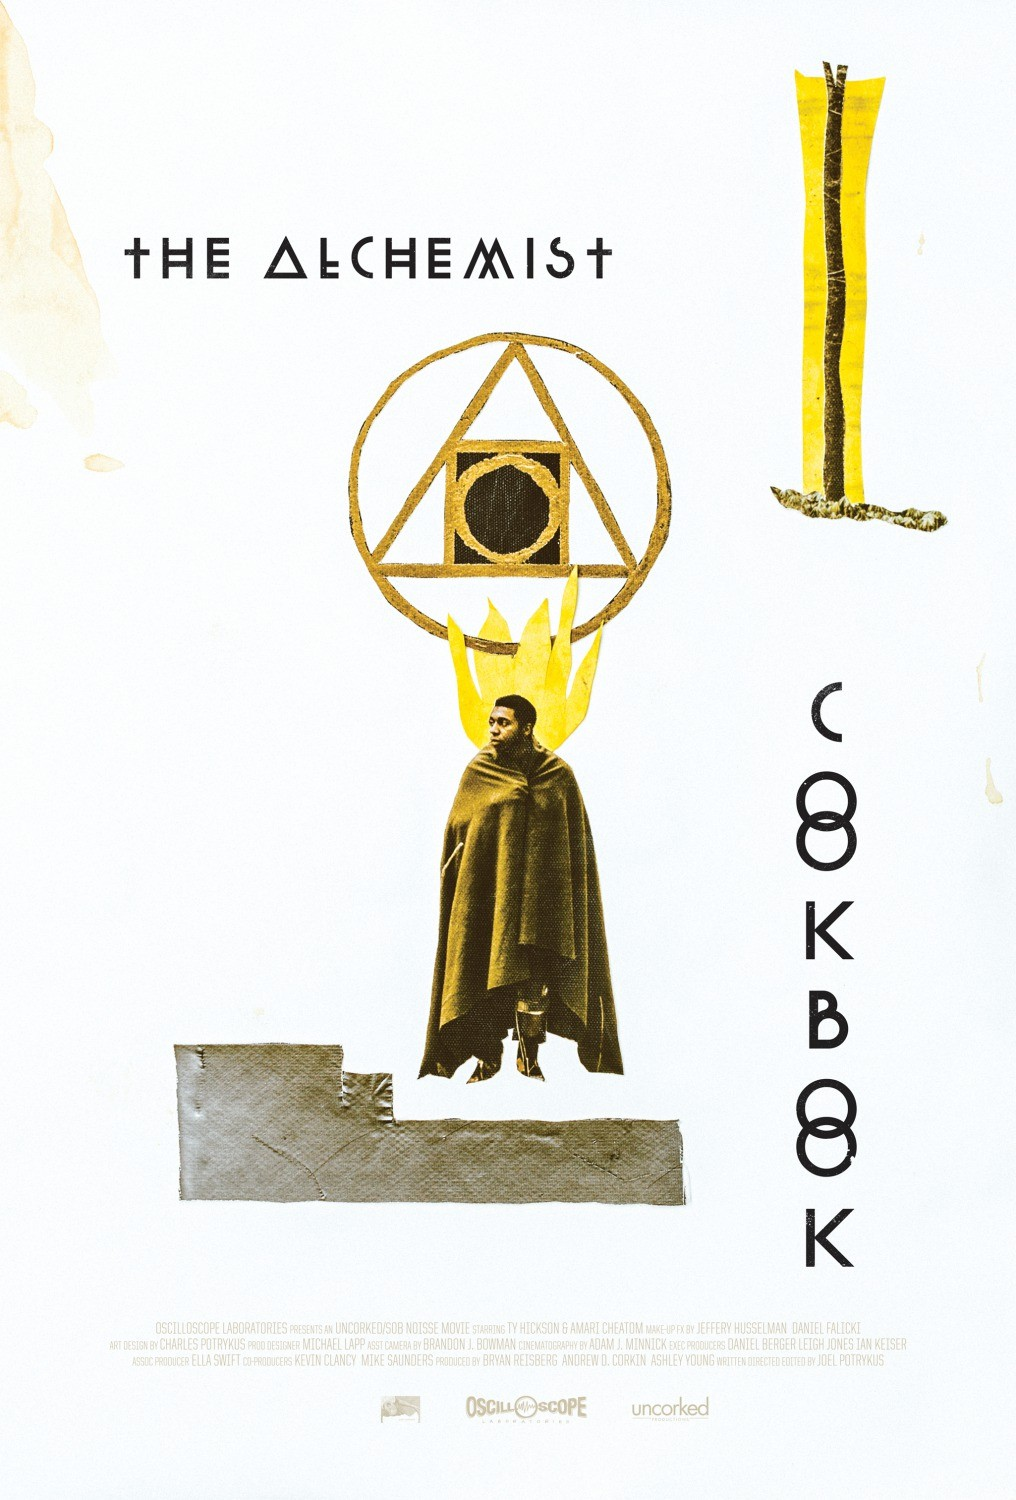 the alchemist cookbook reviews  the alchemist cookbook